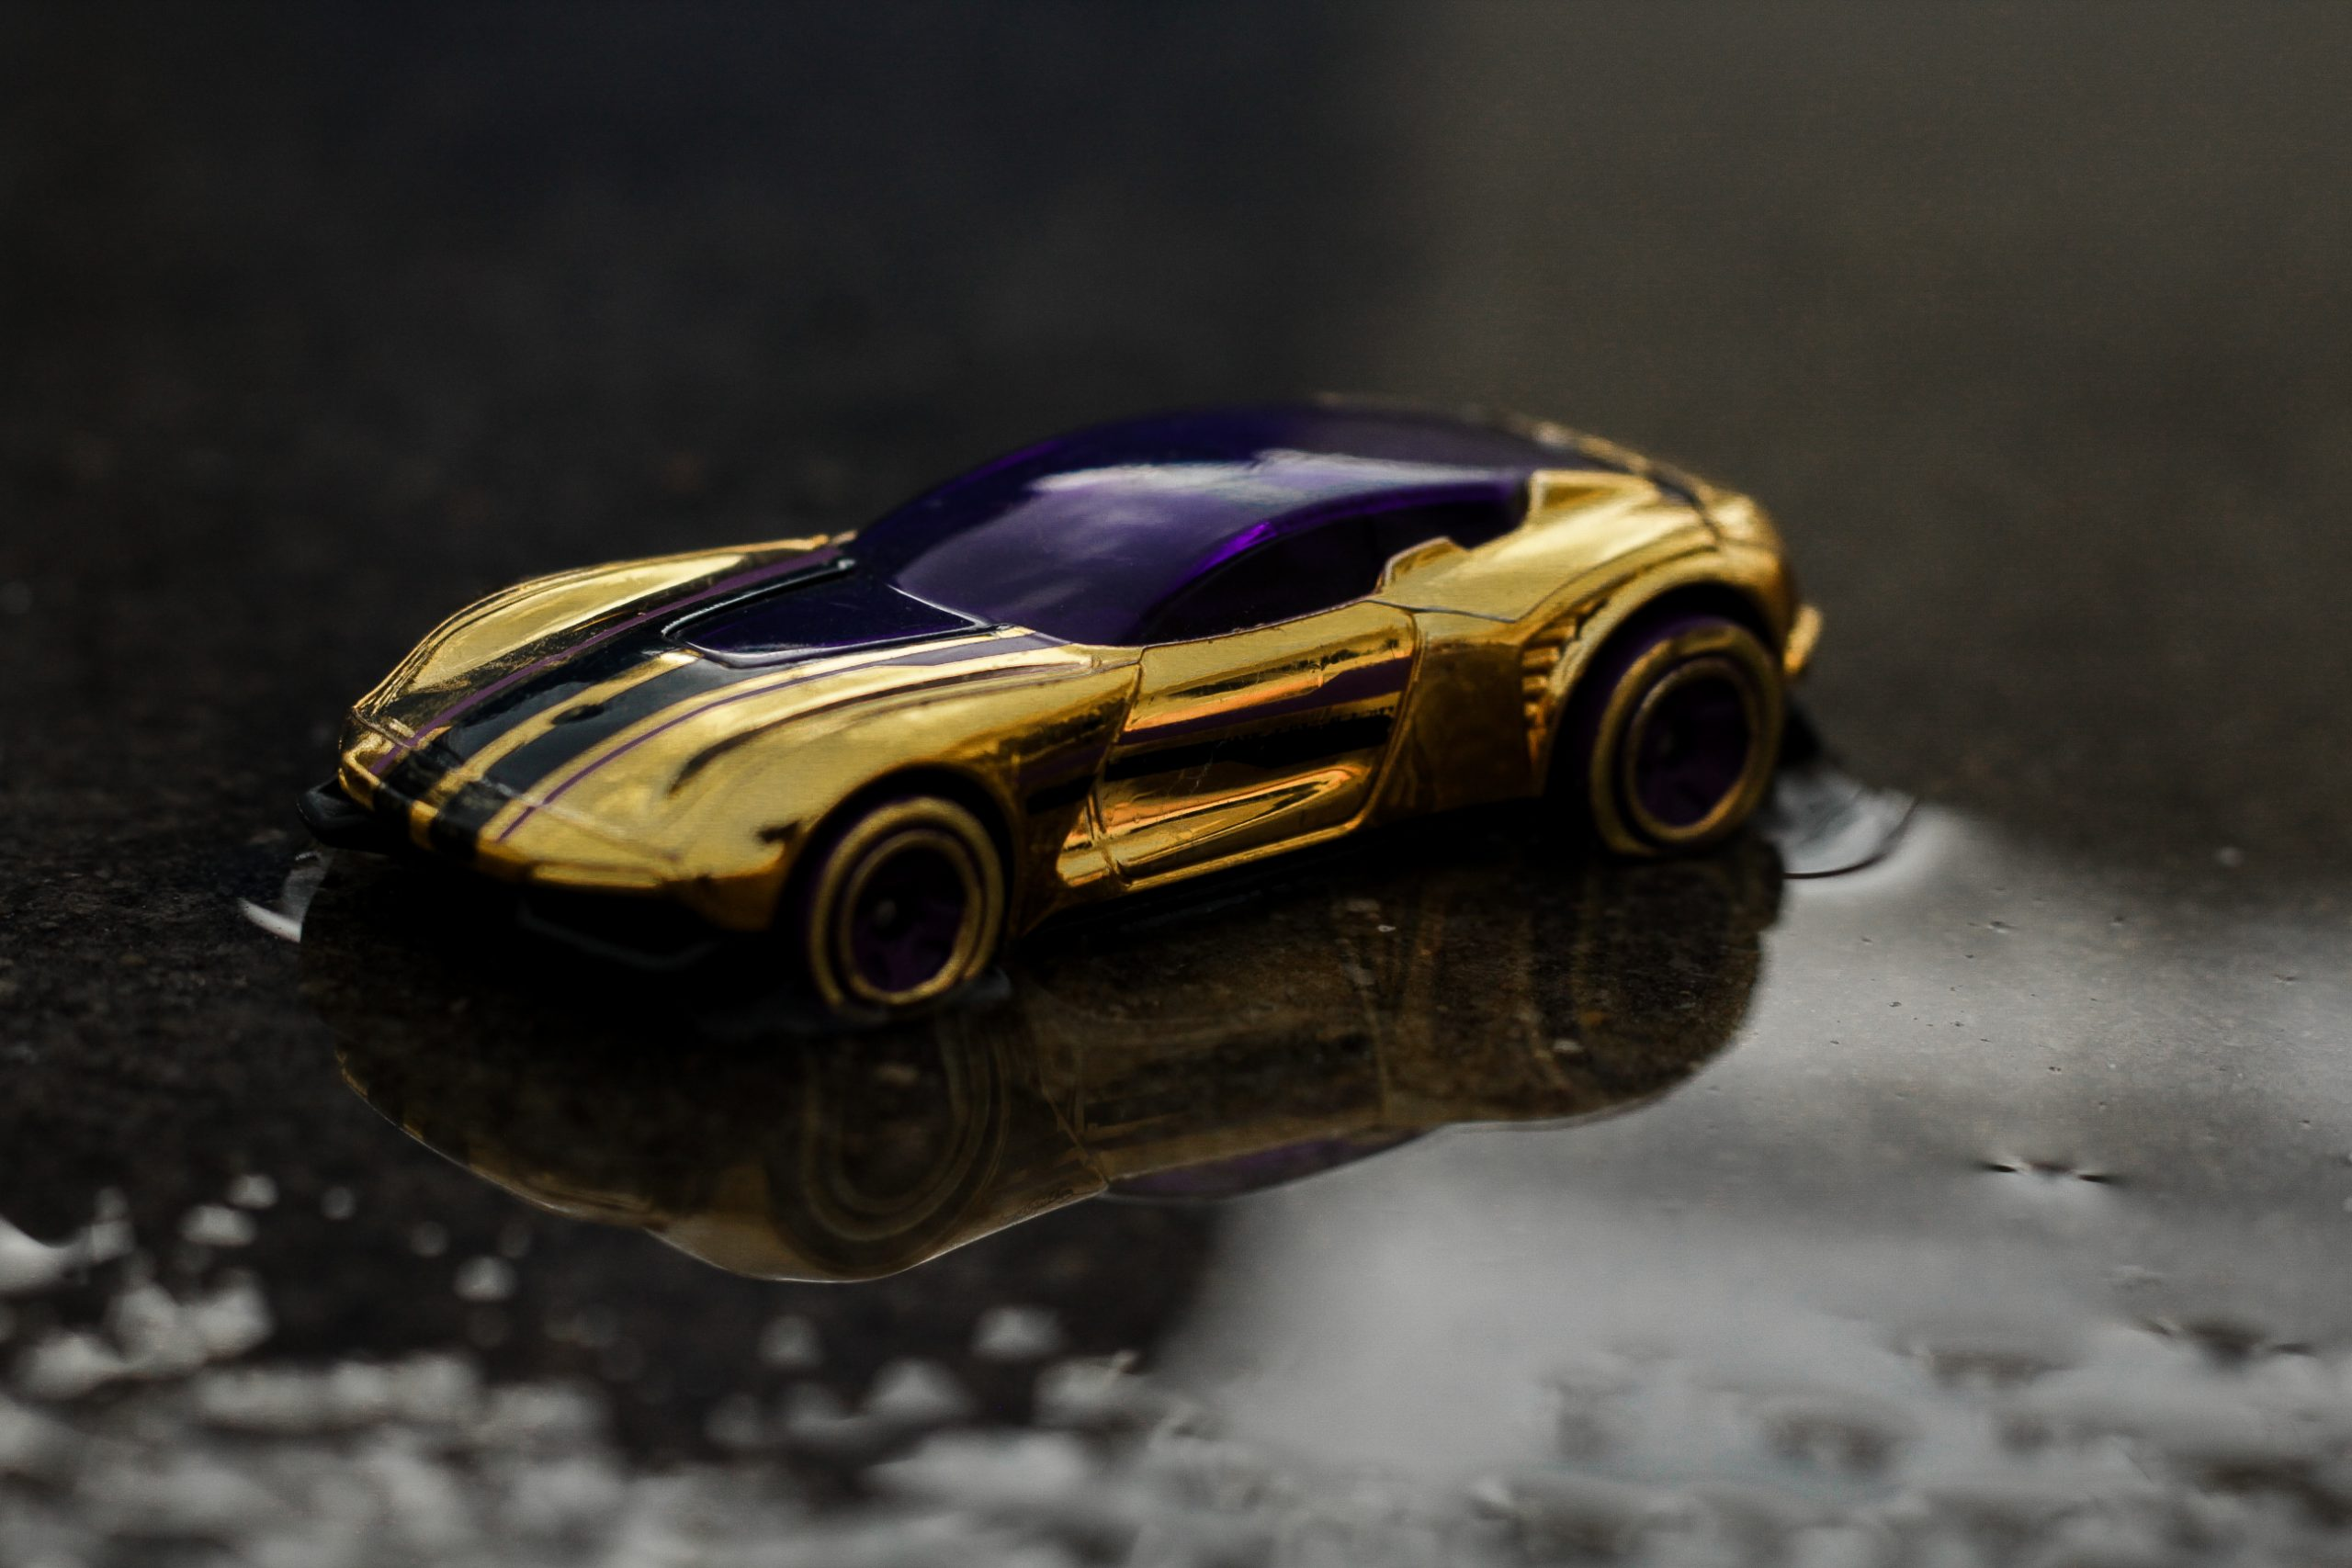 Toy car on the water